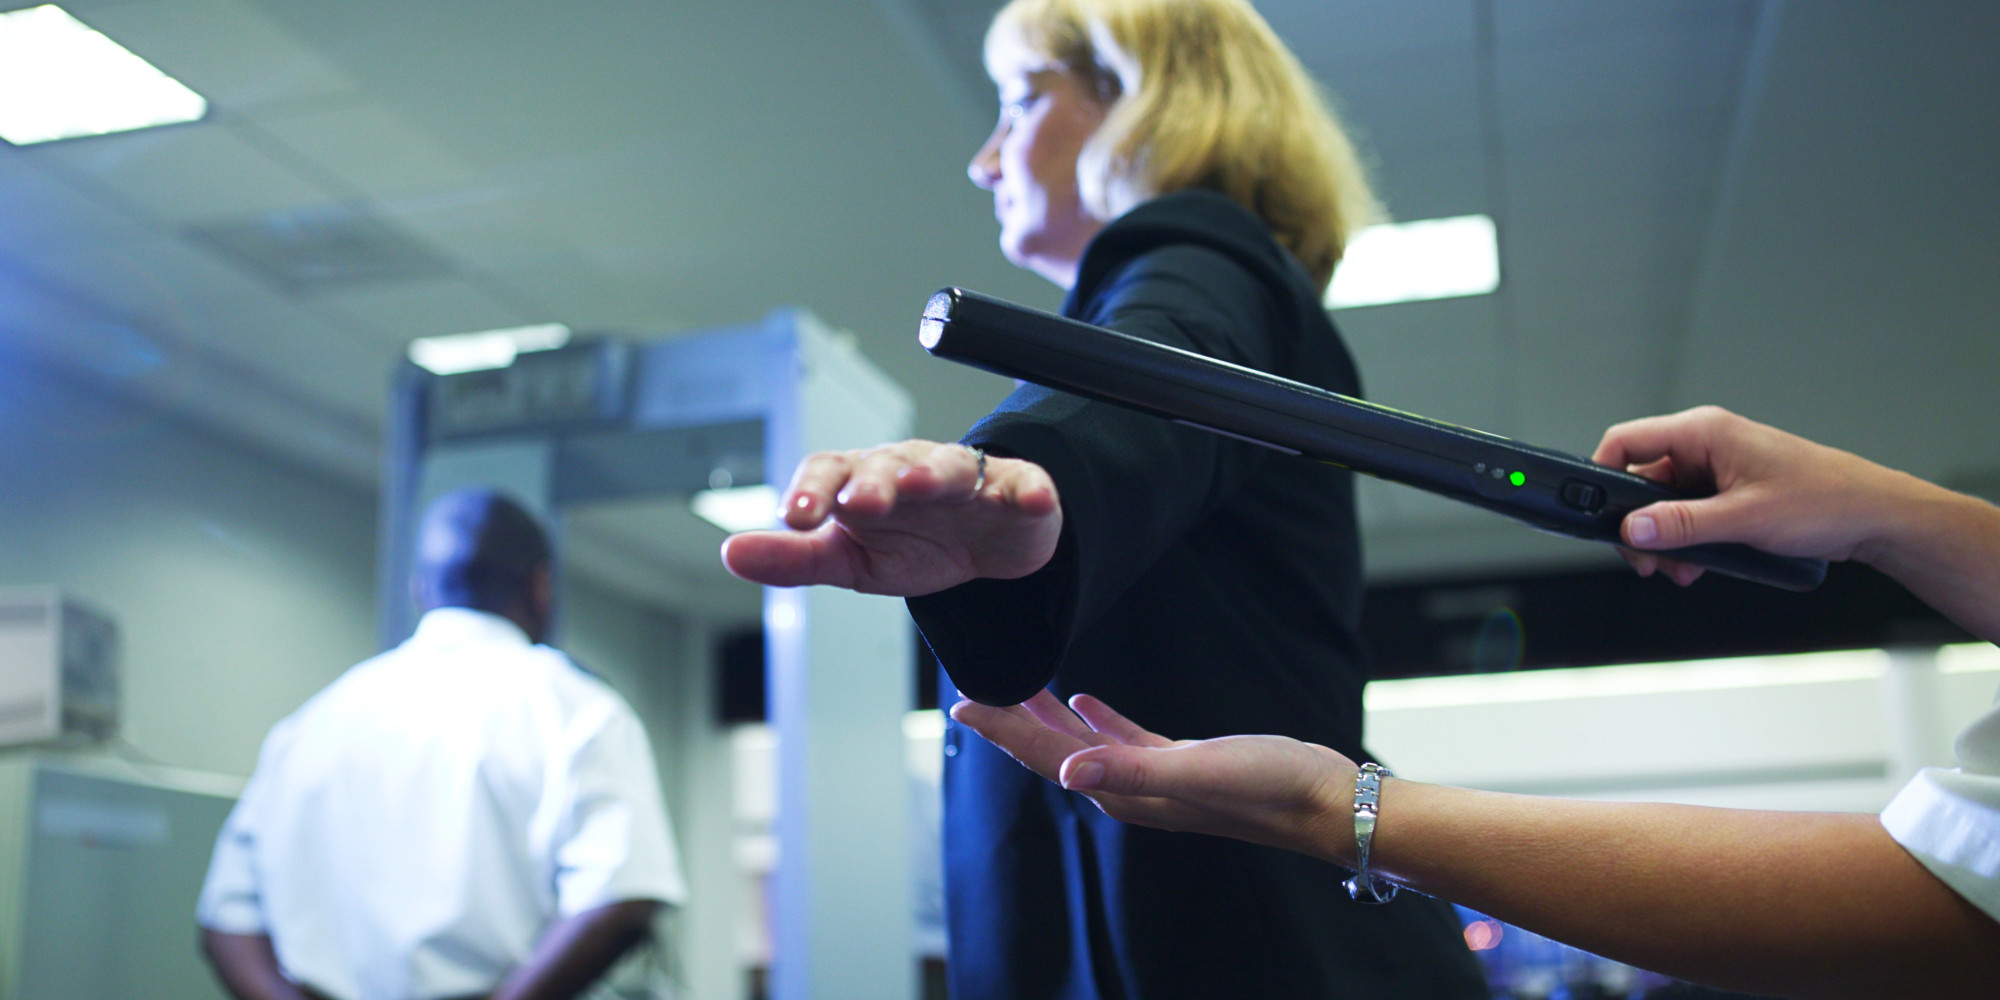 airport security research paper The transportation security administration has come out to research suggests that airport body scanners are dangerous to your health research papers.